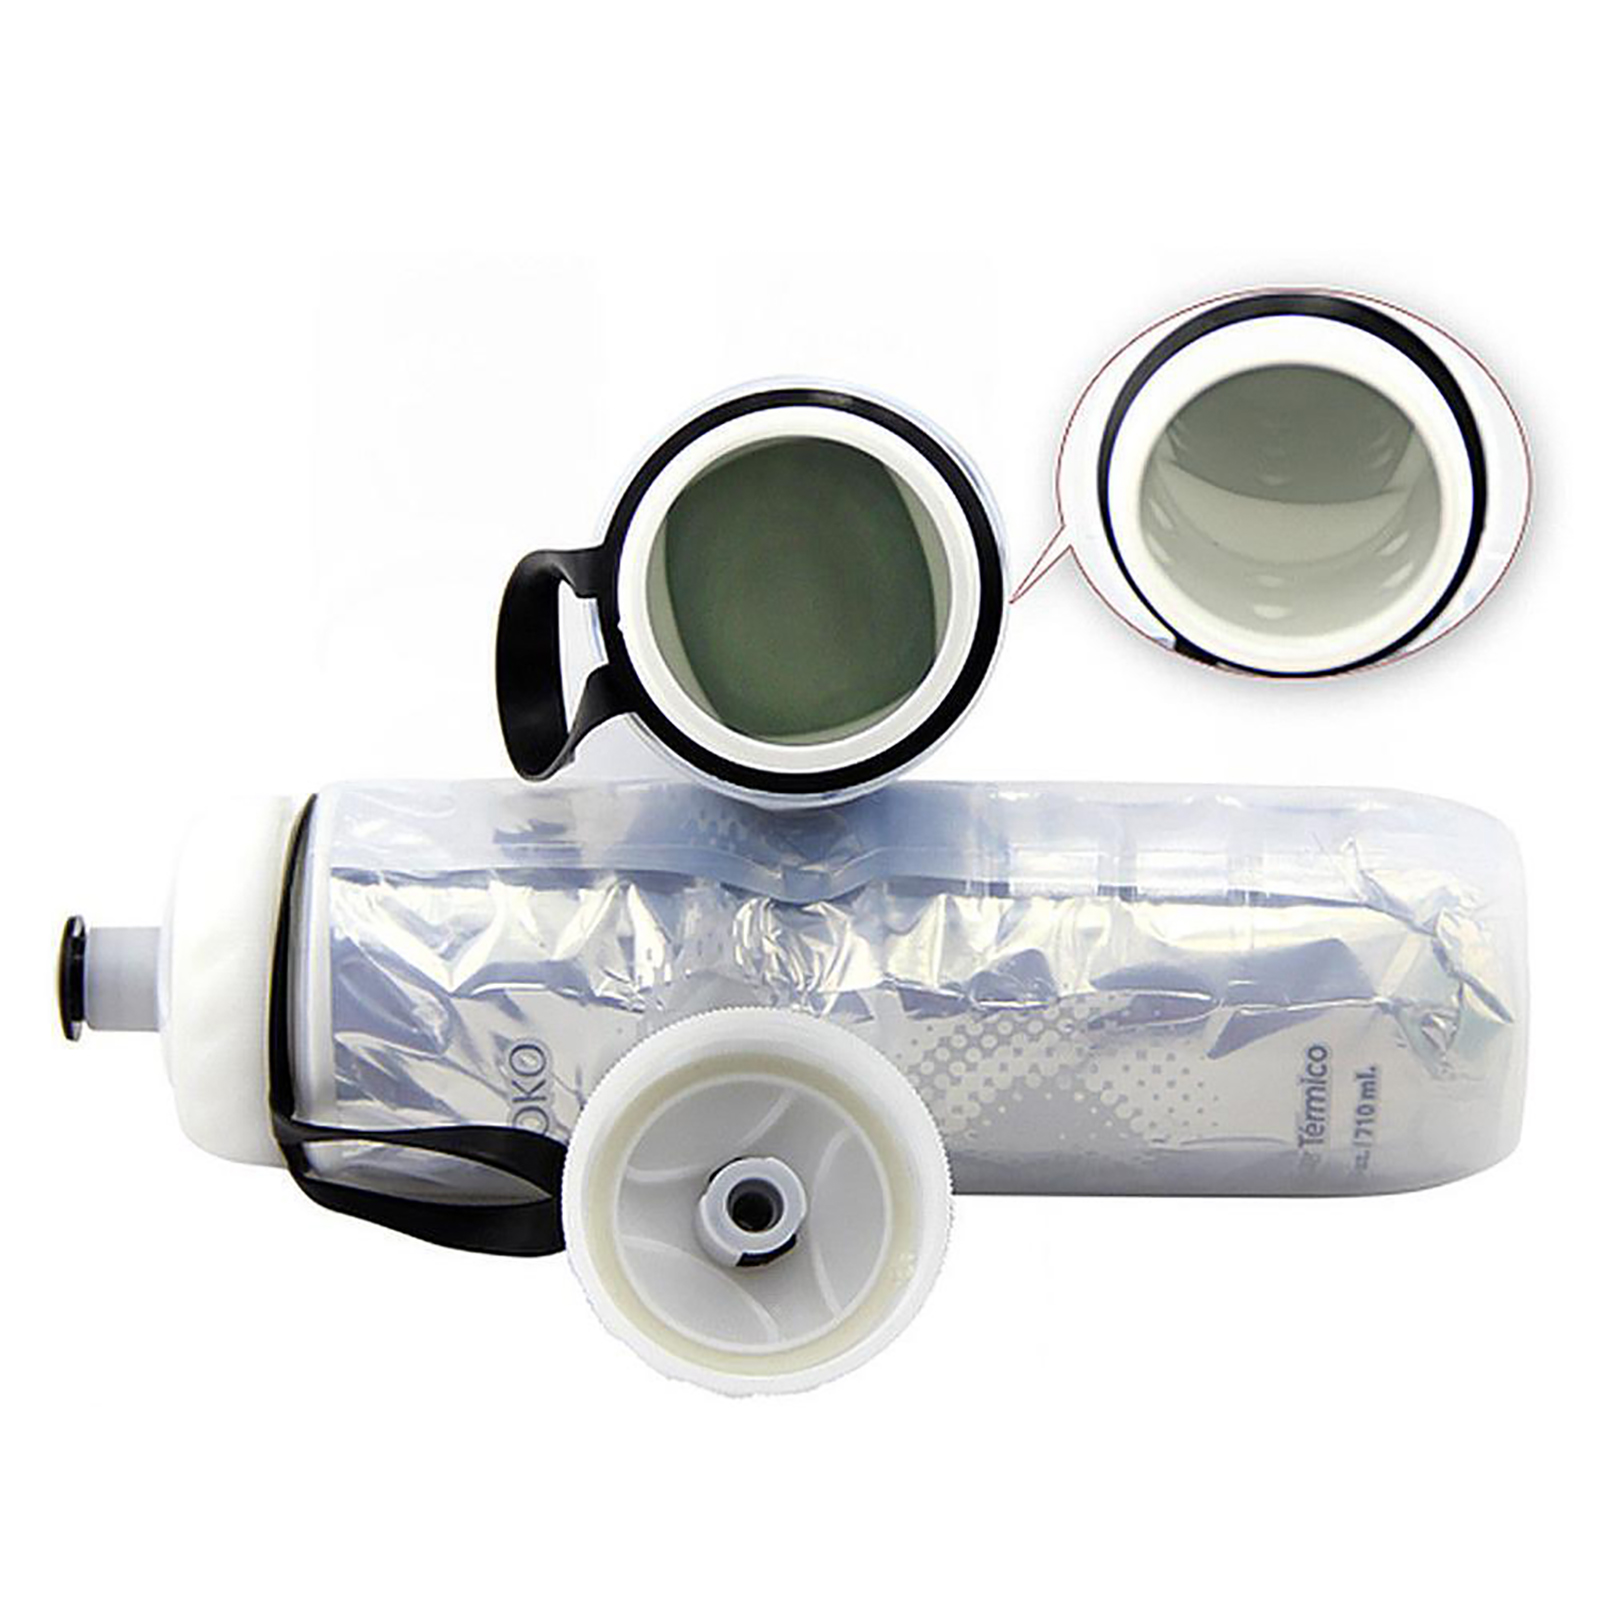 710ml-Simple-Outdoor-Insulated-Water-Bottle-Bike-Bicycle-Cycling-Sport-Cup-Worth thumbnail 27